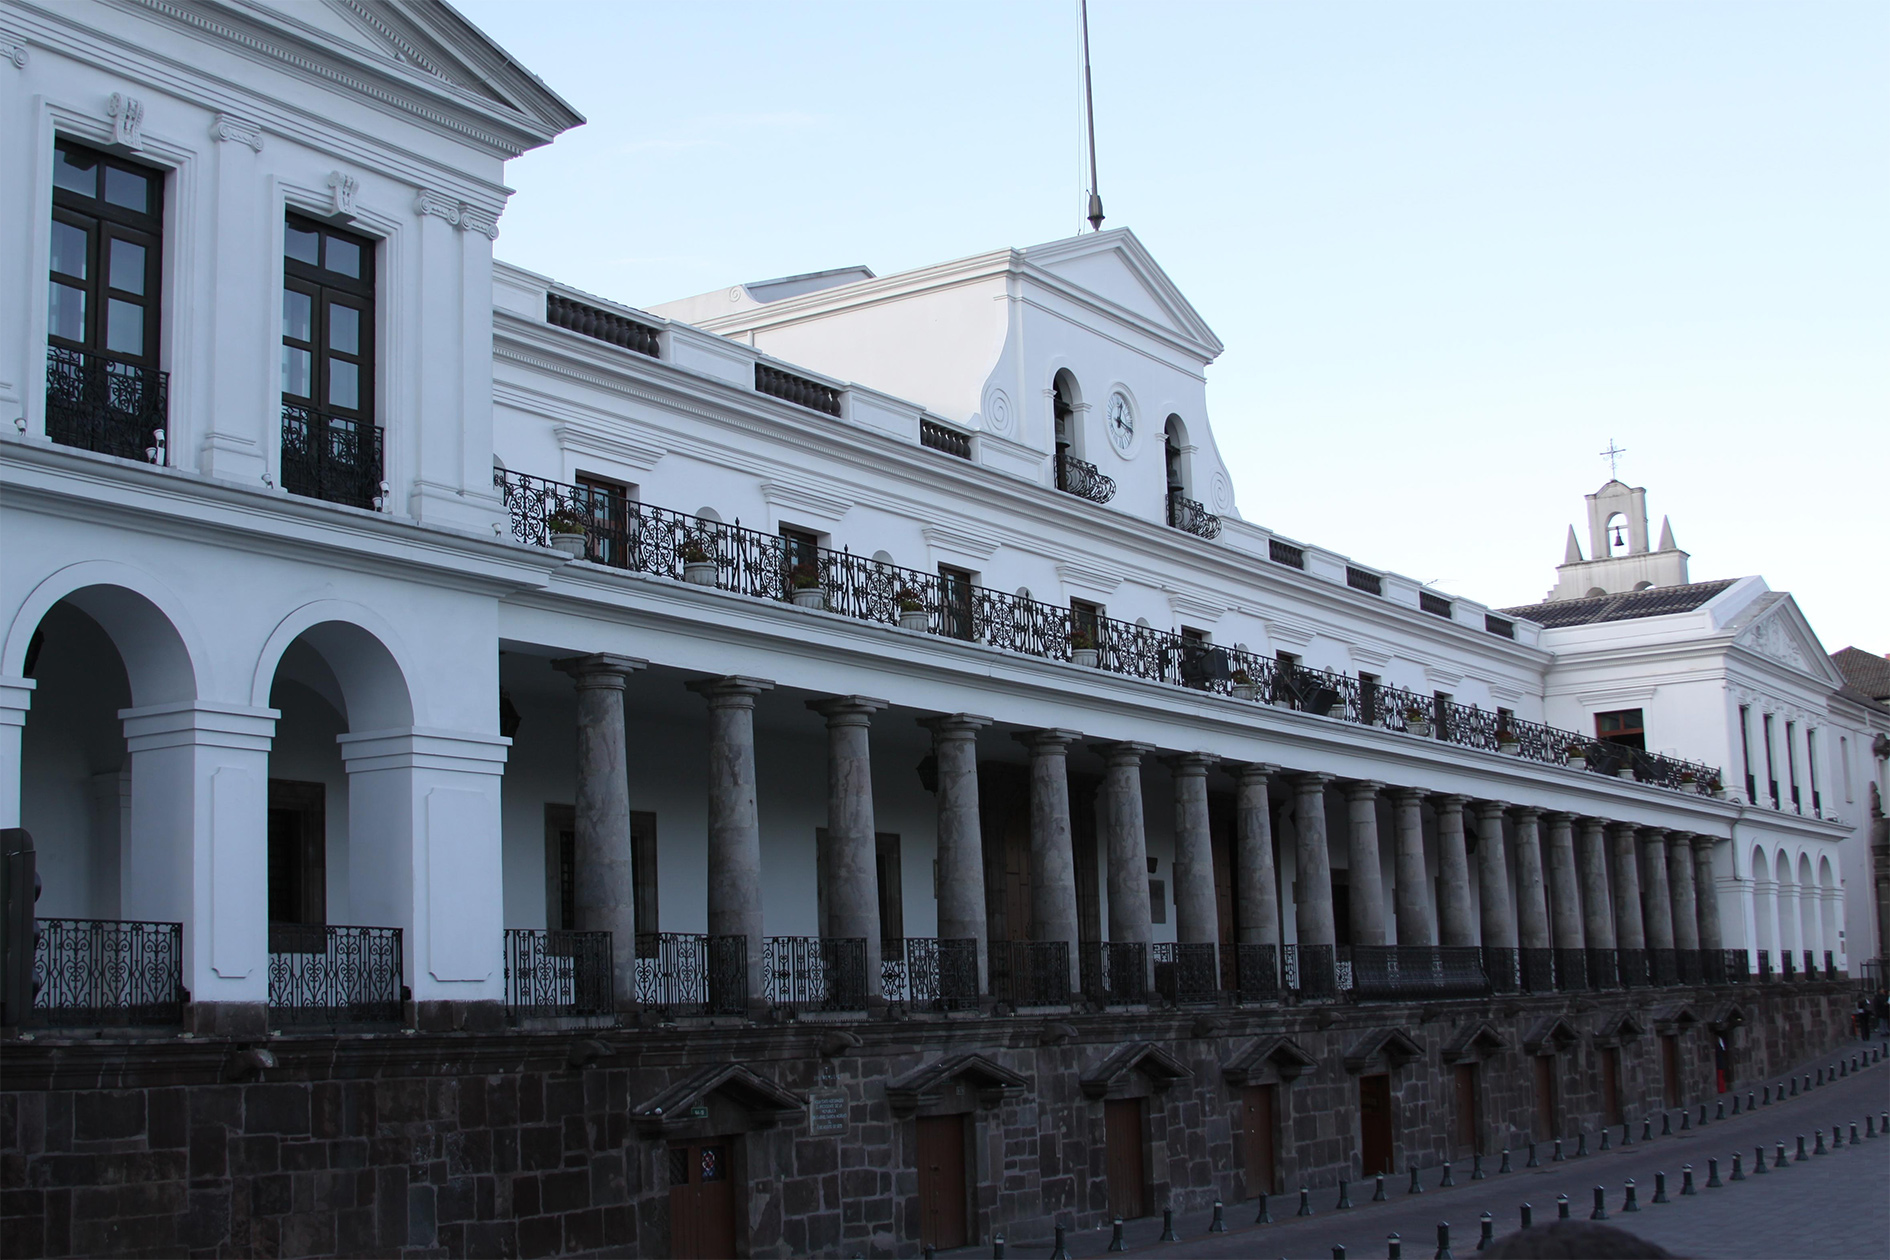 Carondelet Palace, official residence and principal workplace of the President of Ecuador.